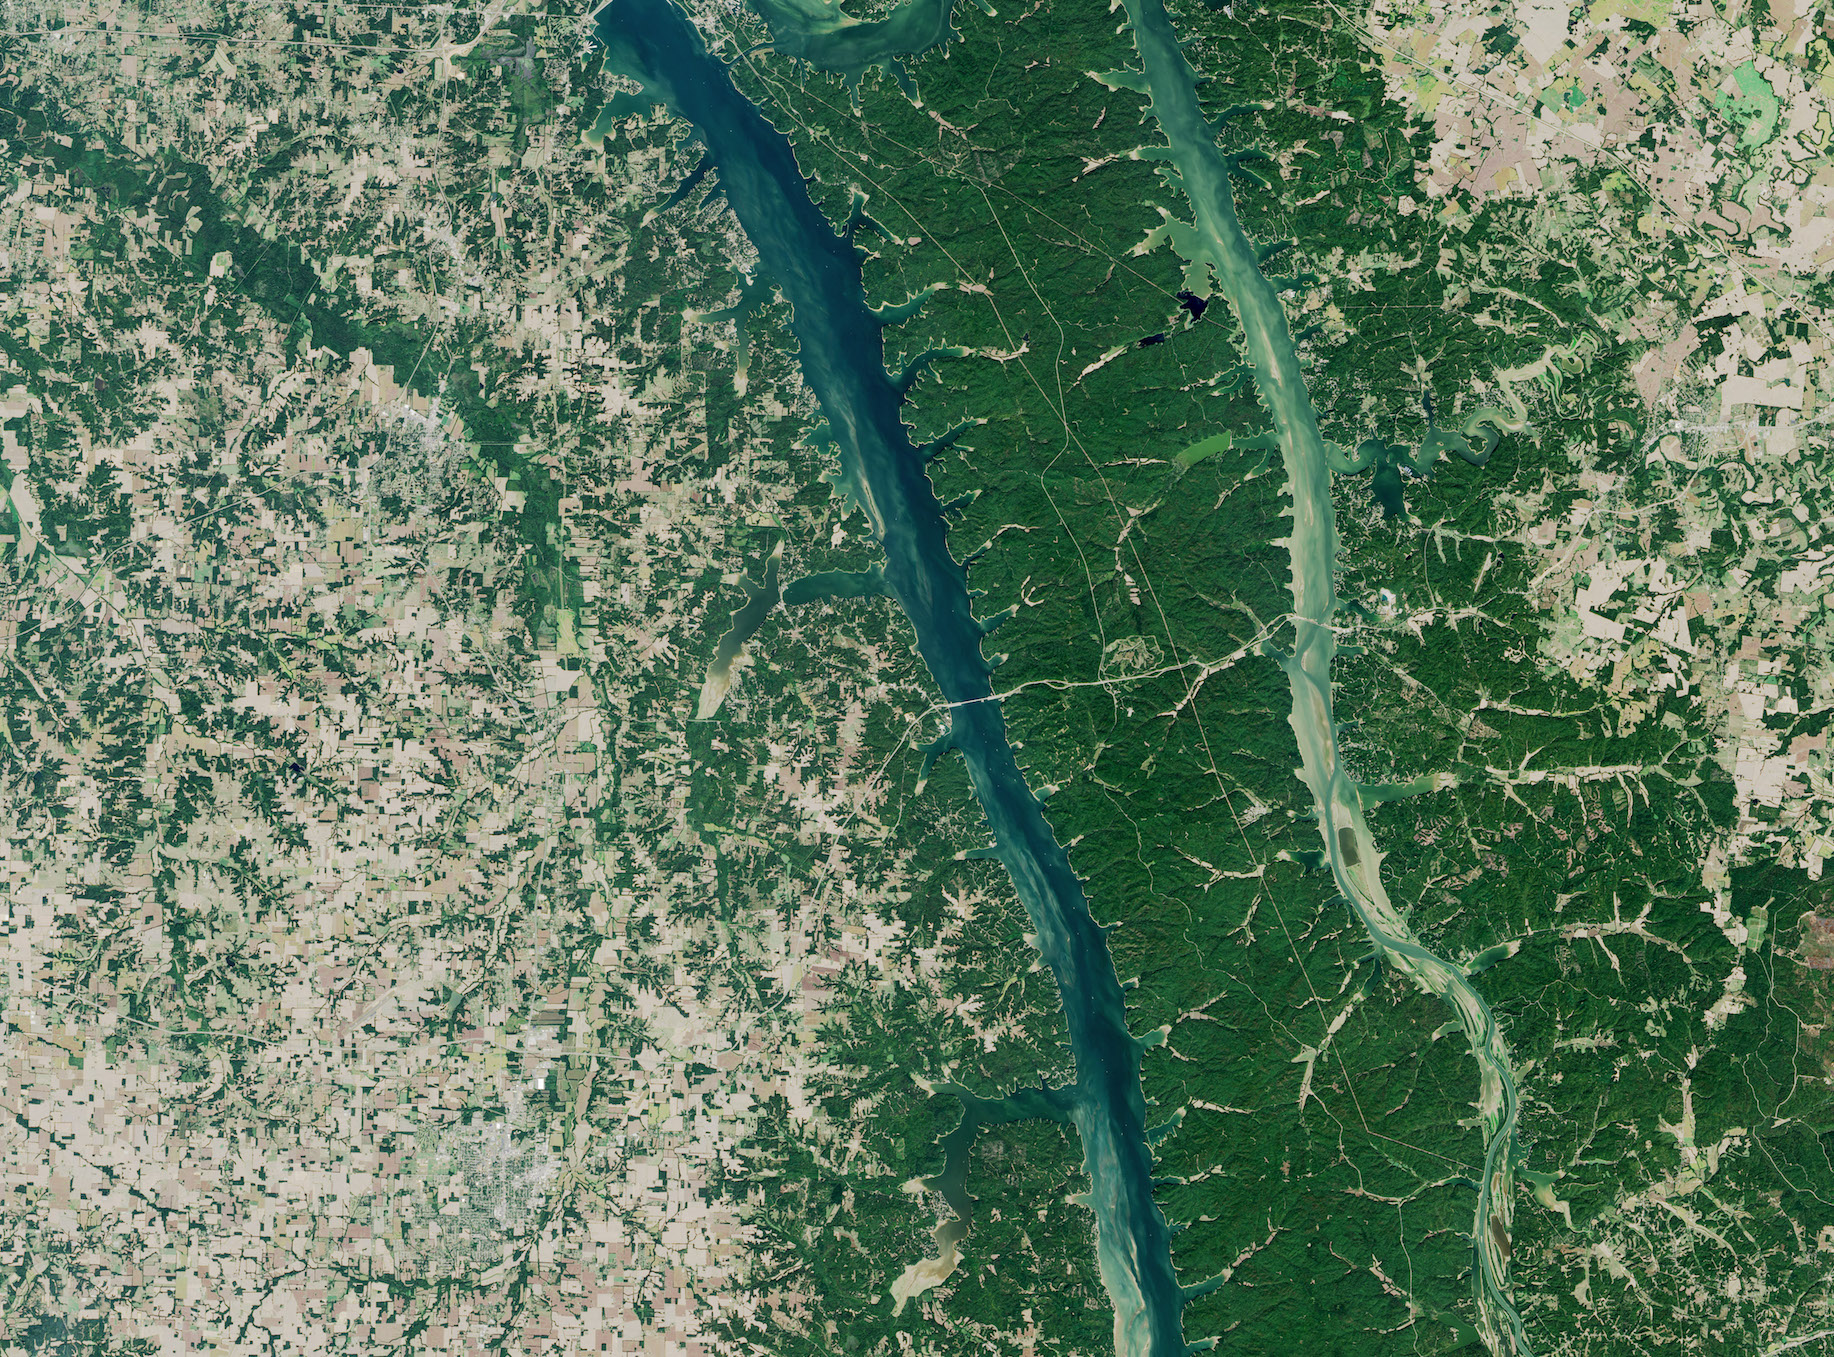 Today's Image of the Day comes from the NASA Earth Observatory and features a look at Kentucky Lake and Lake Barkley in Kentucky and Tennessee.